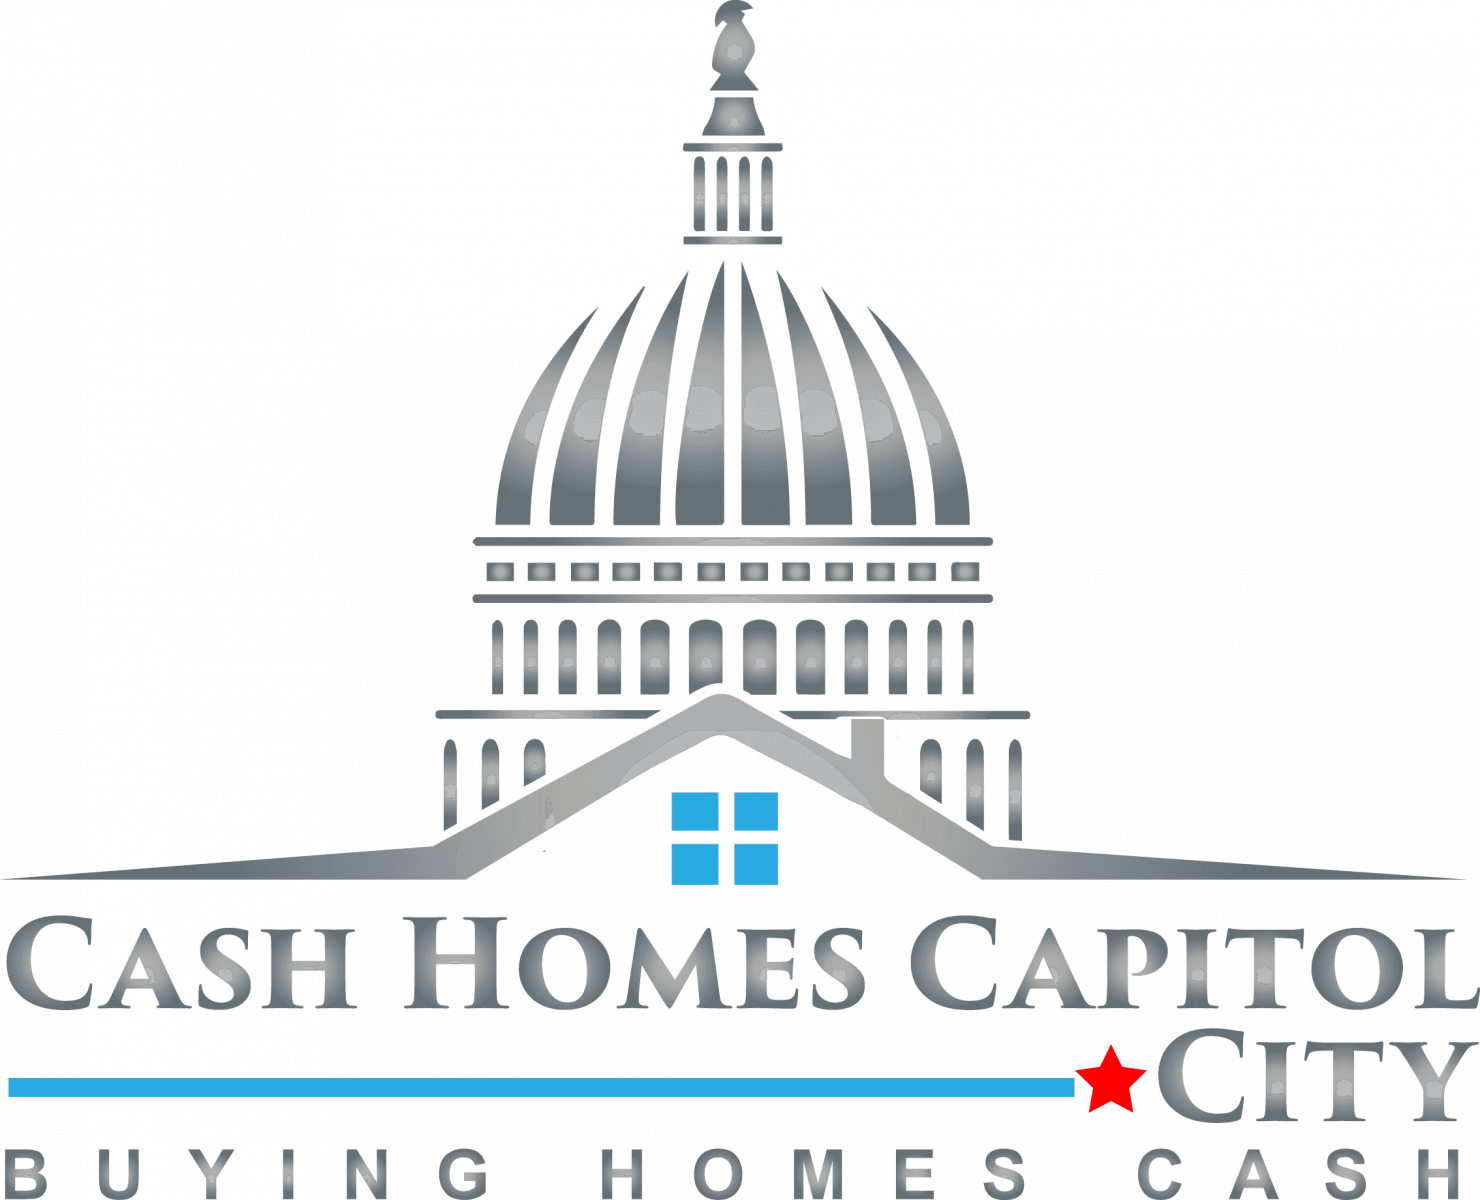 Cash Homes Capitol City logo